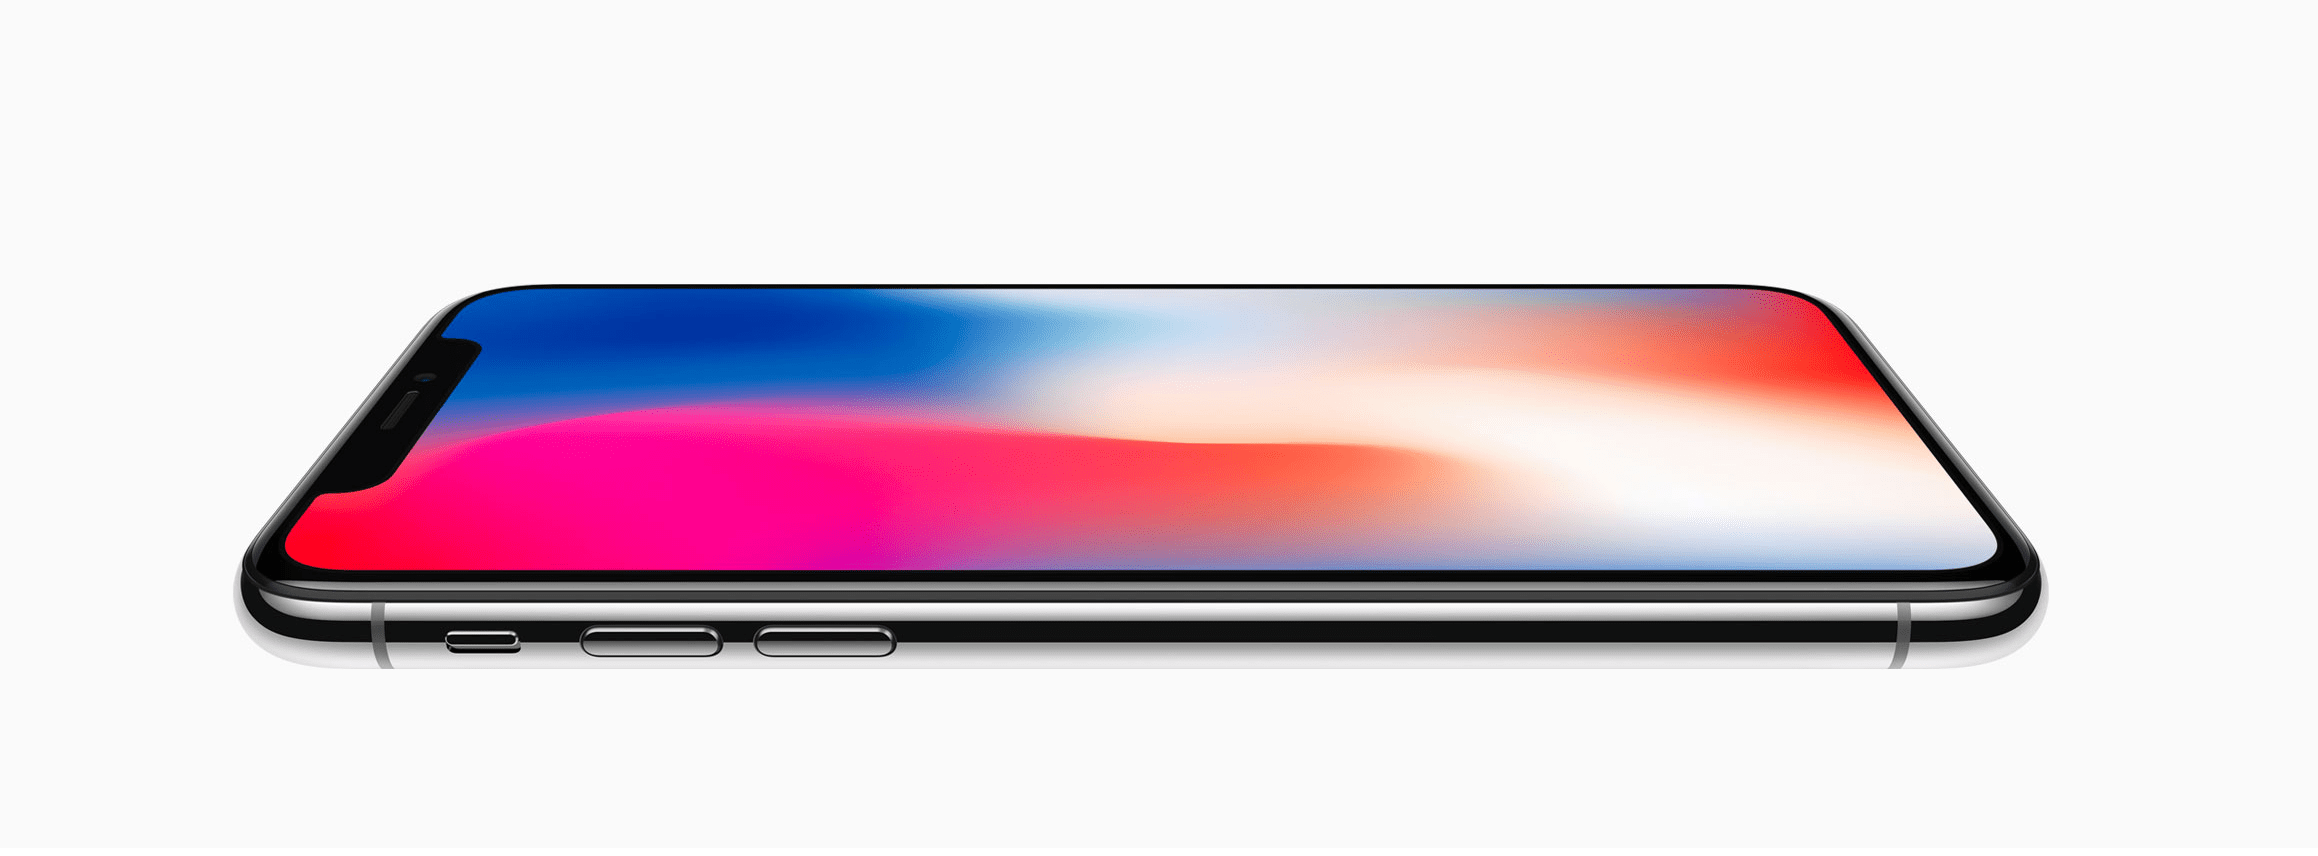 The iPhone X deep-dive - Why this phone will disrupt the mobile imaging ecosystem - Kaptur